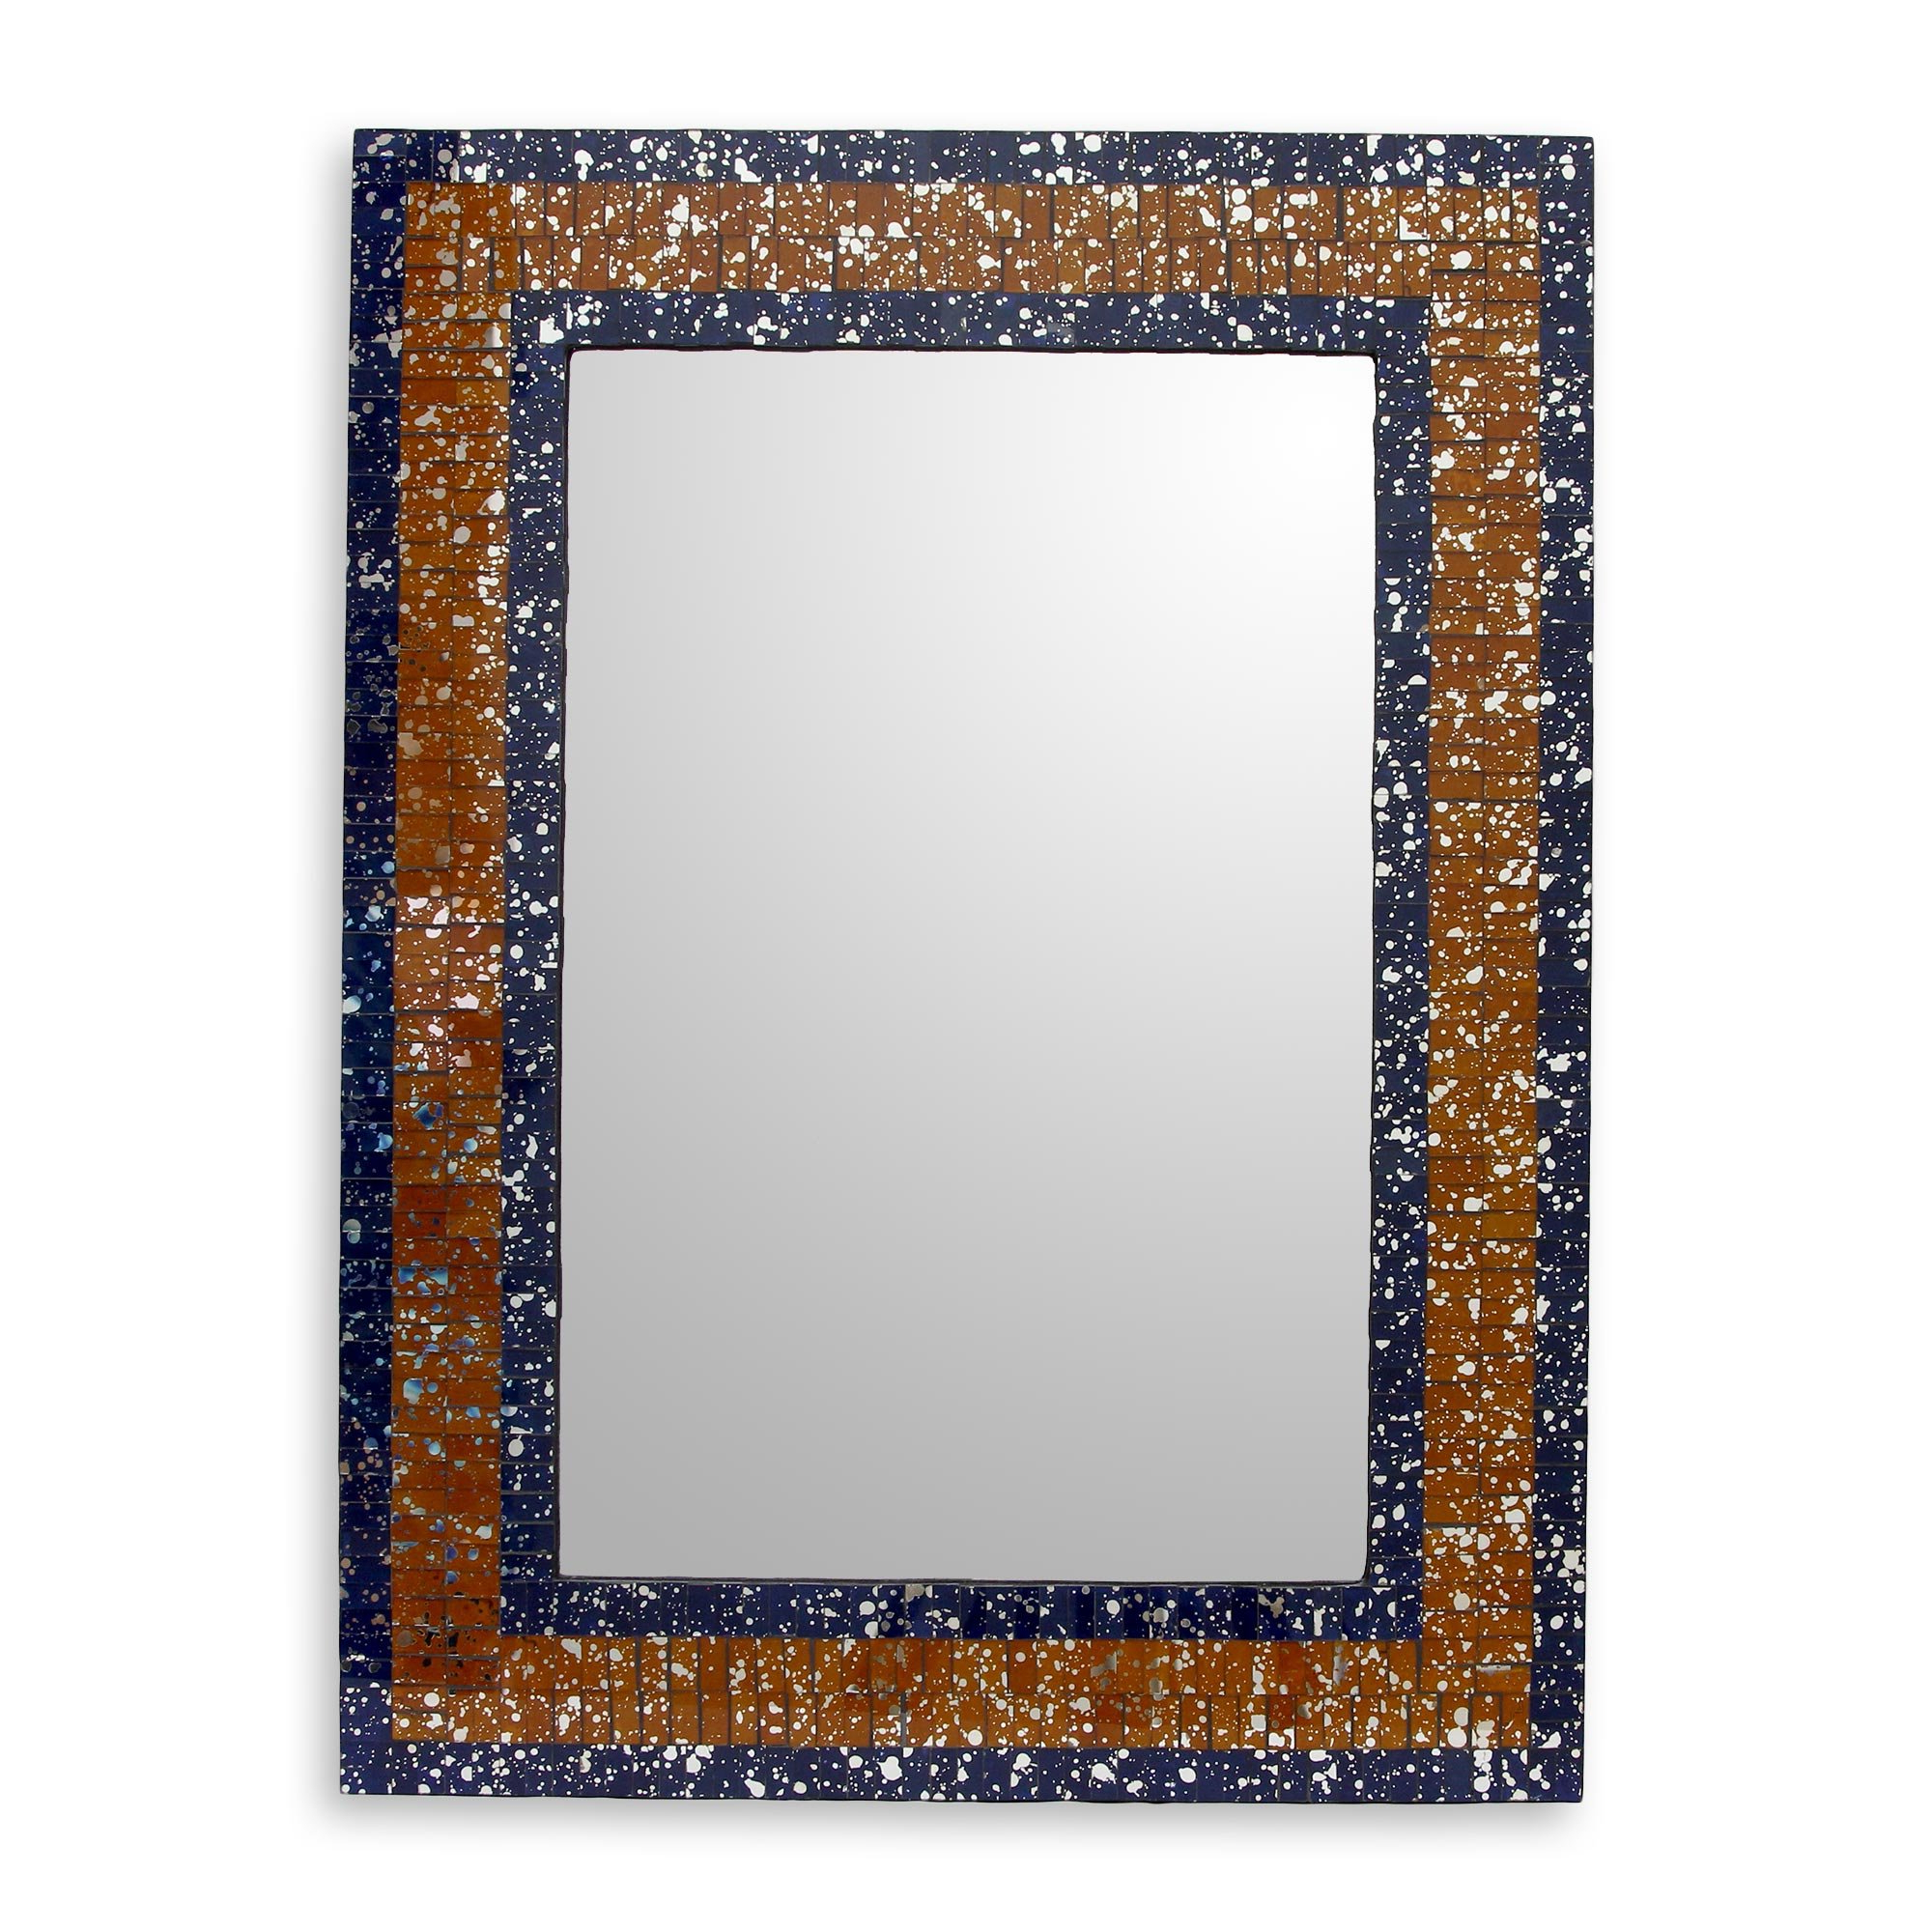 2020 Mosaic Framed Wall Mirrors For Glass Mosaic Mirror (View 20 of 20)